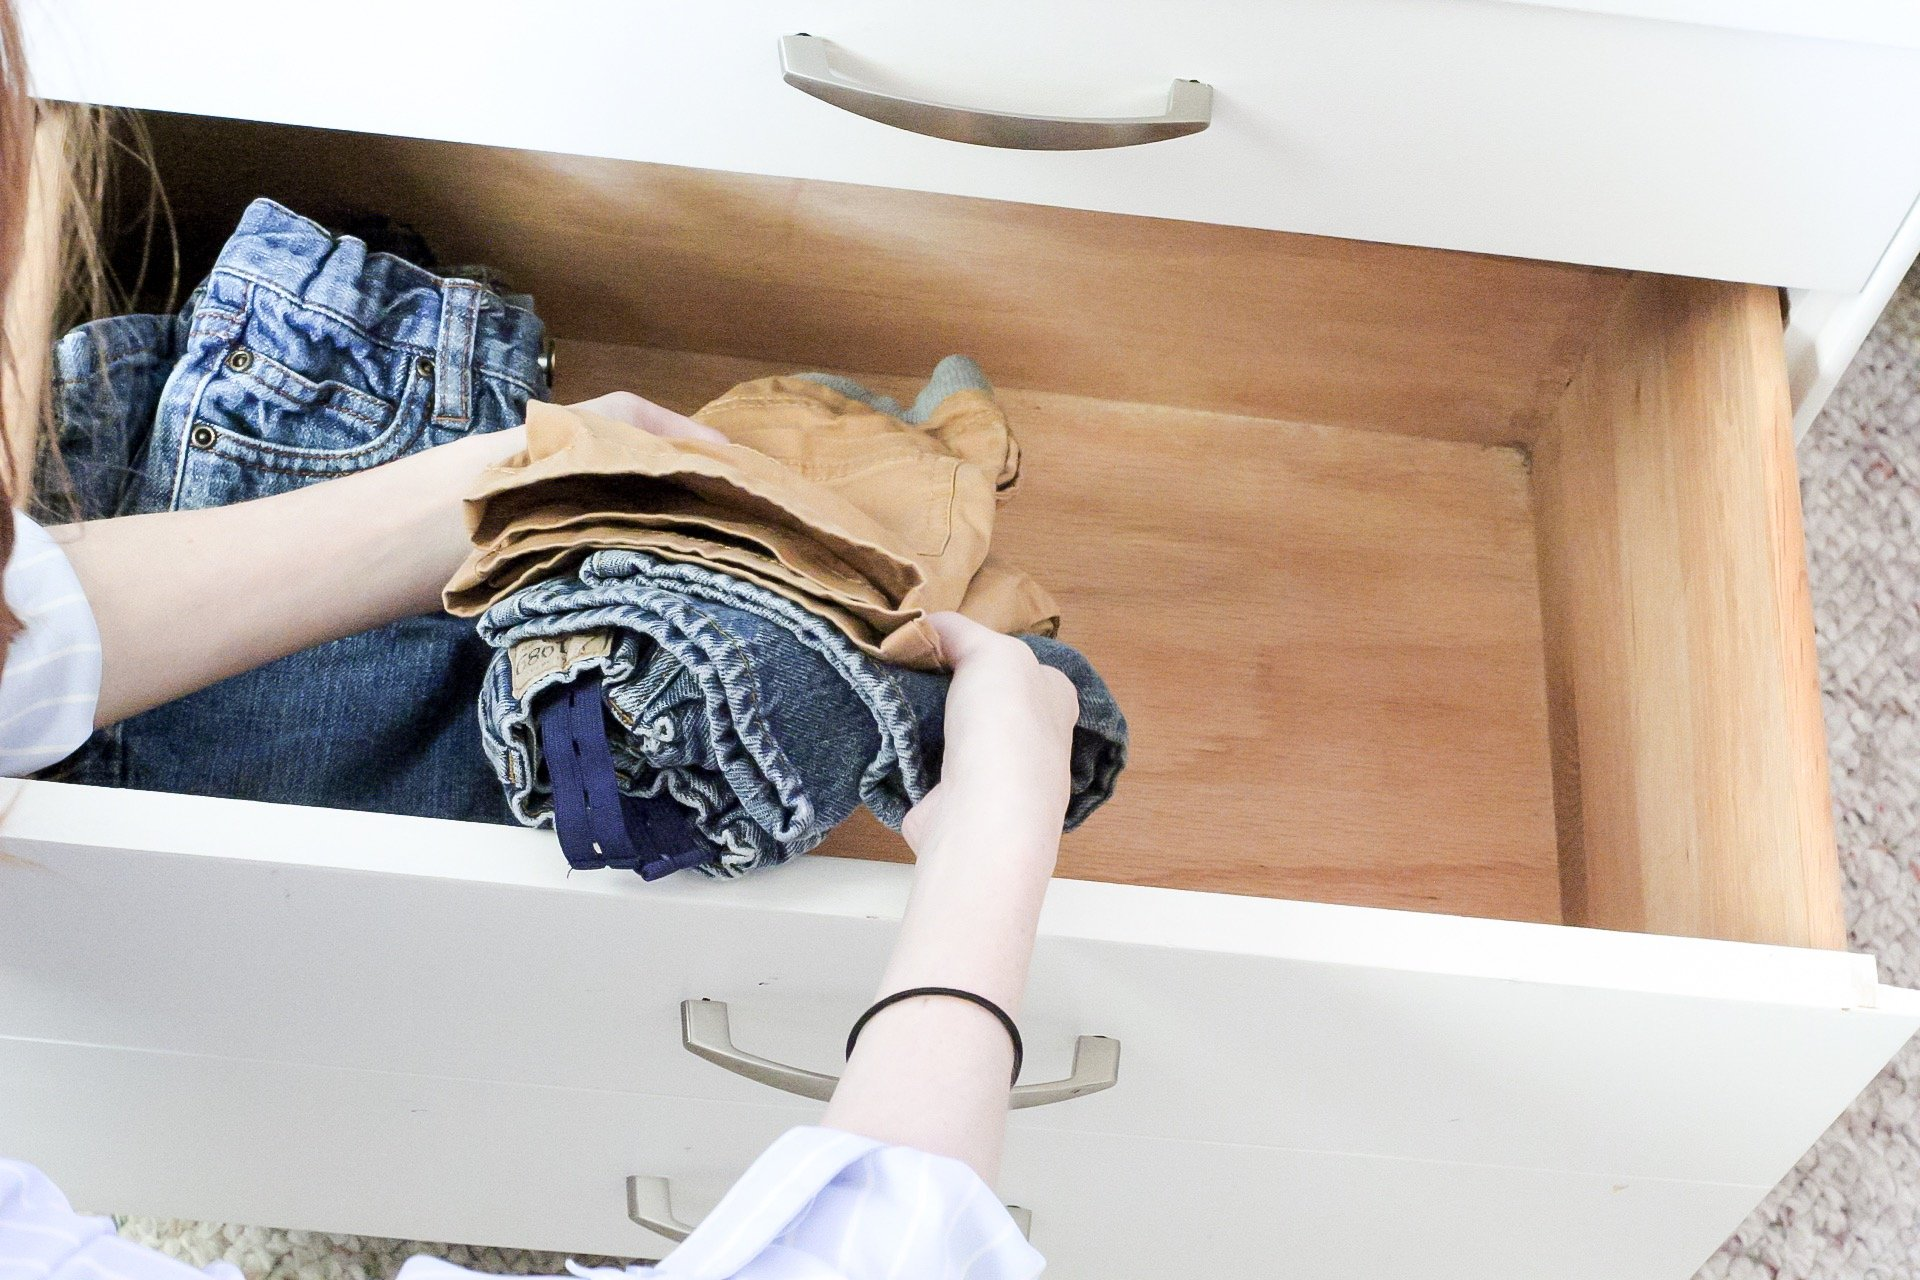 Putting freshly cleaned and folded clothes into drawers